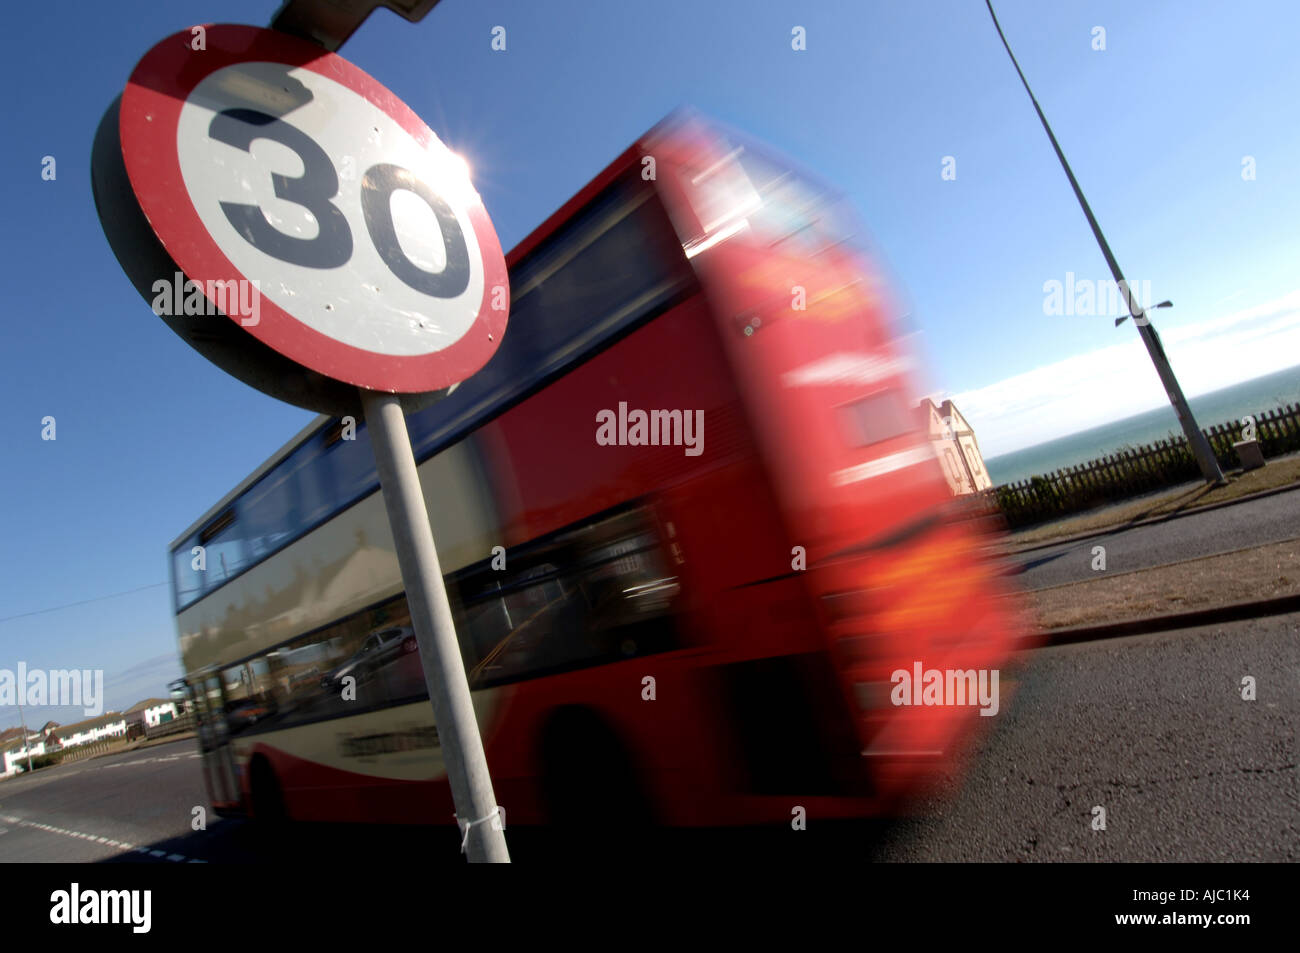 A red double decker bus enters a 30mph zone in the seaside town of Peacehaven - Stock Image